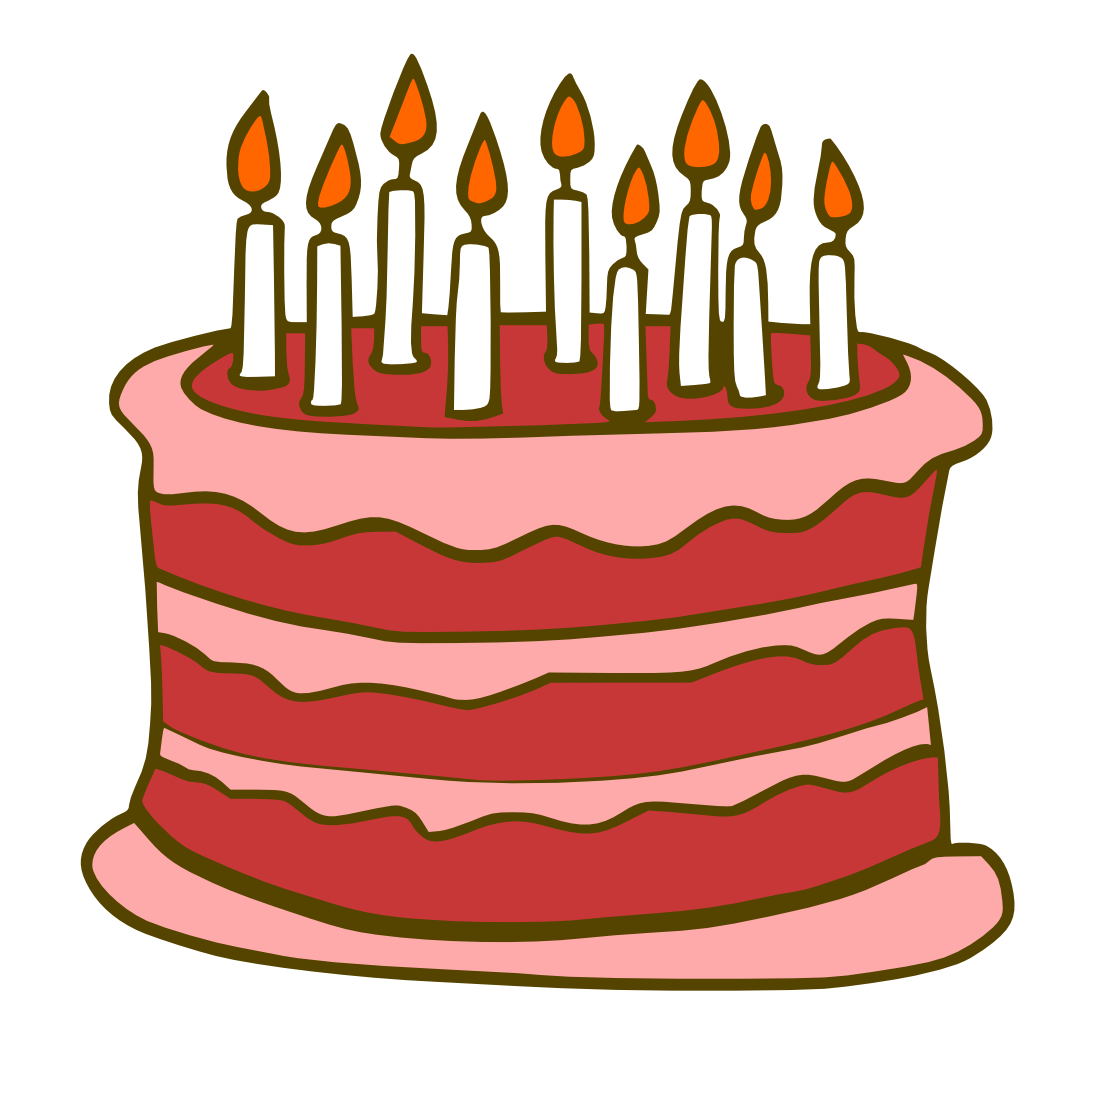 Birthday Cake Art Images : Birthday Cake Graphic - ClipArt Best